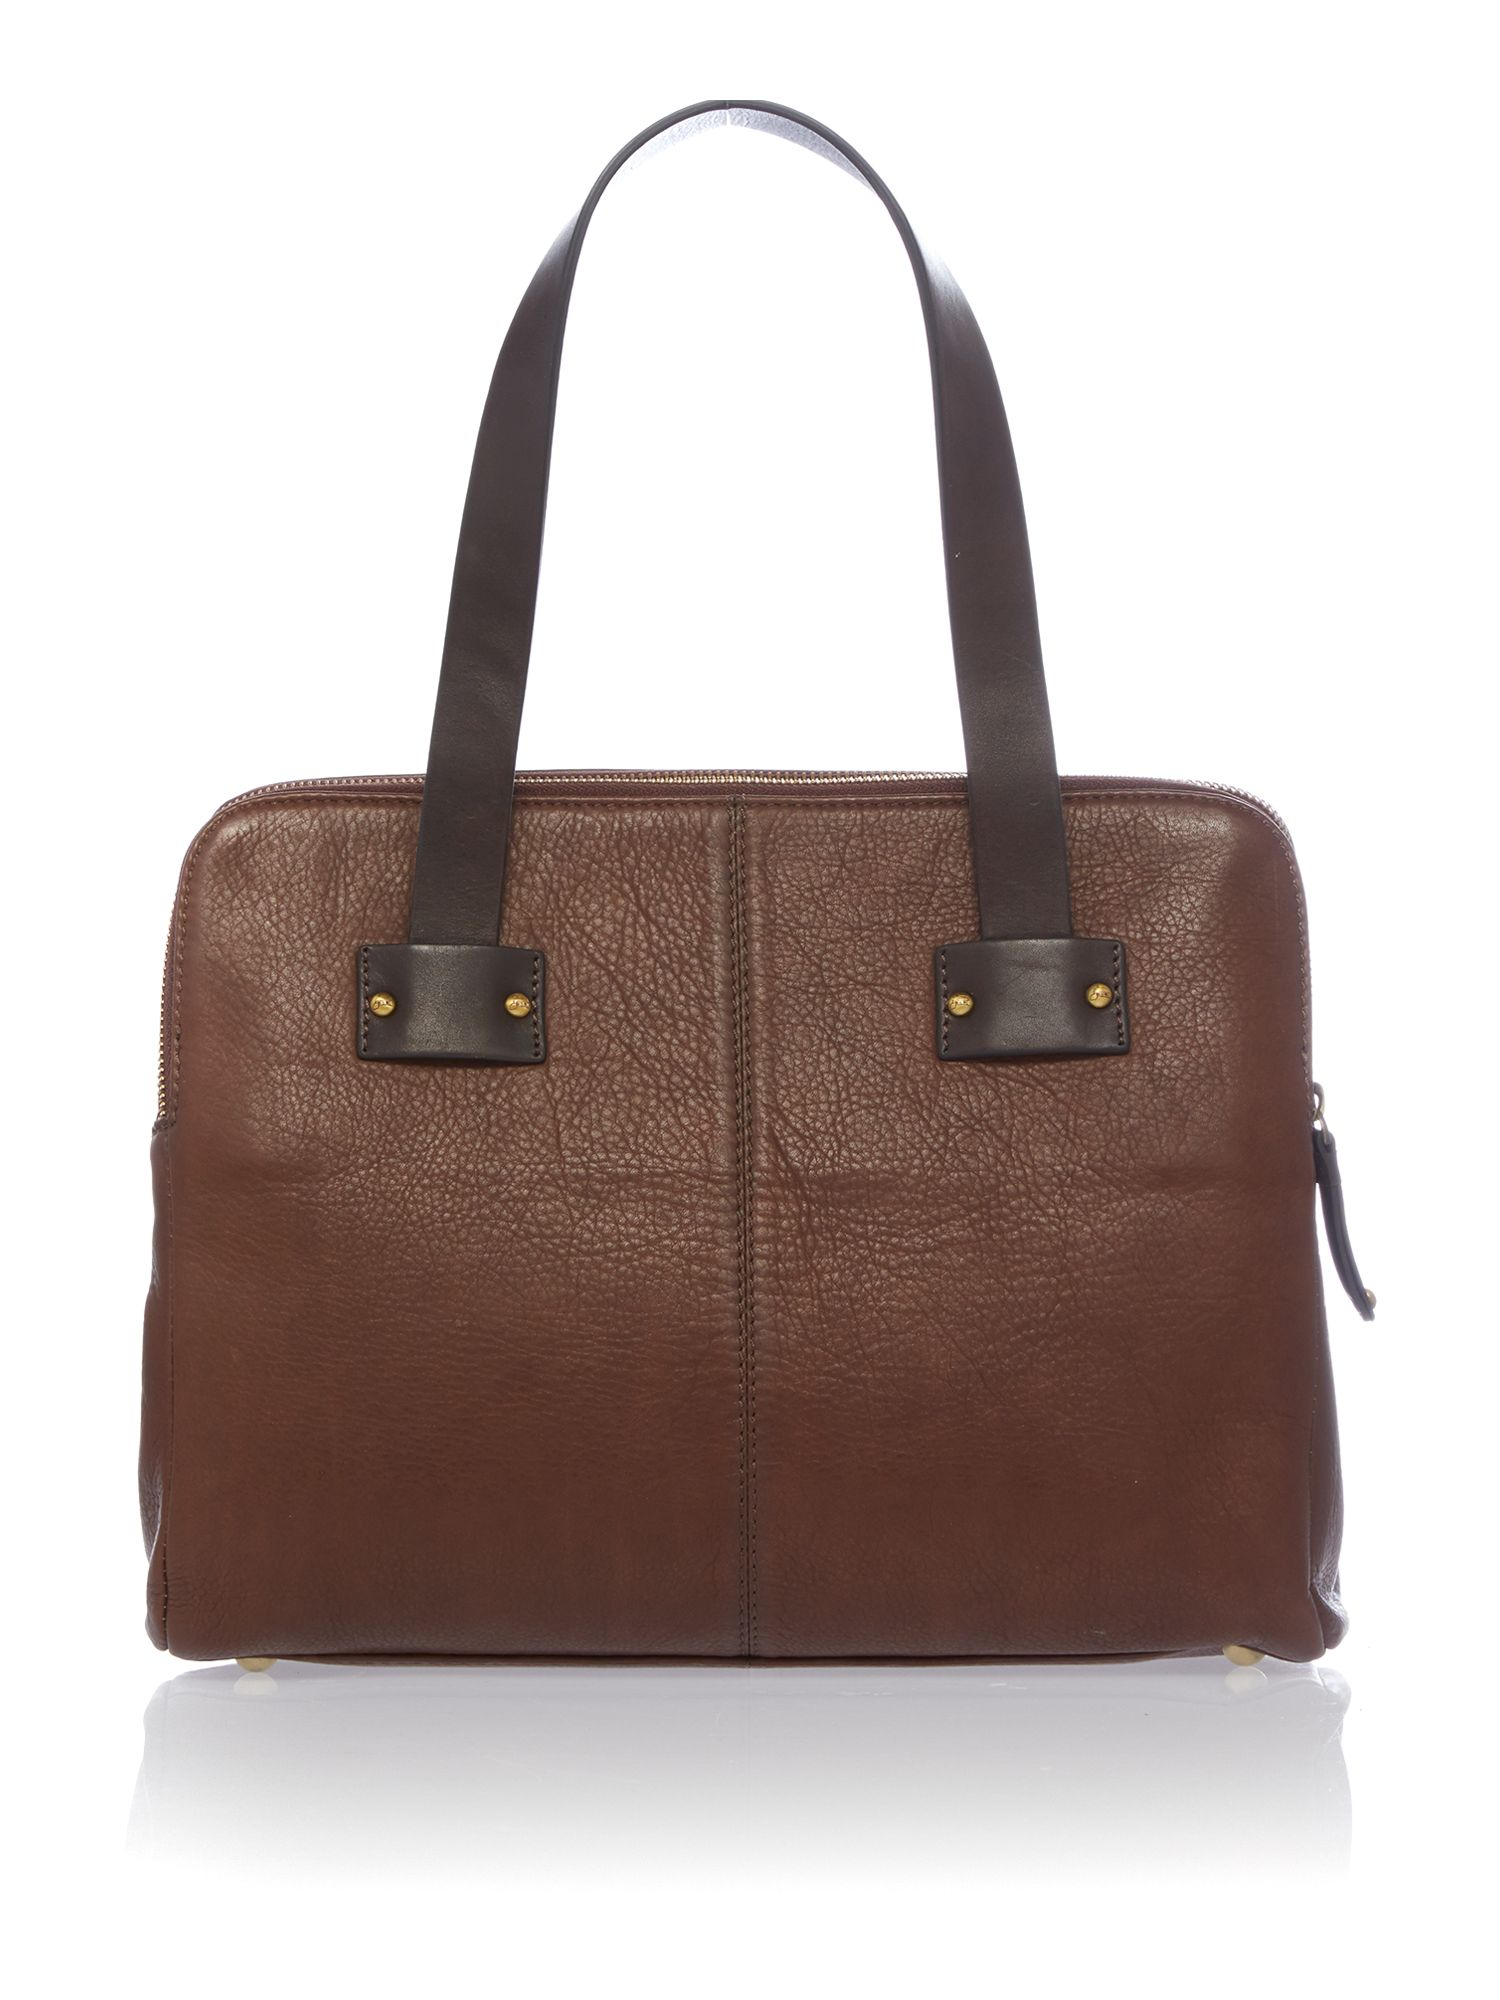 Elsworth tan tote bag